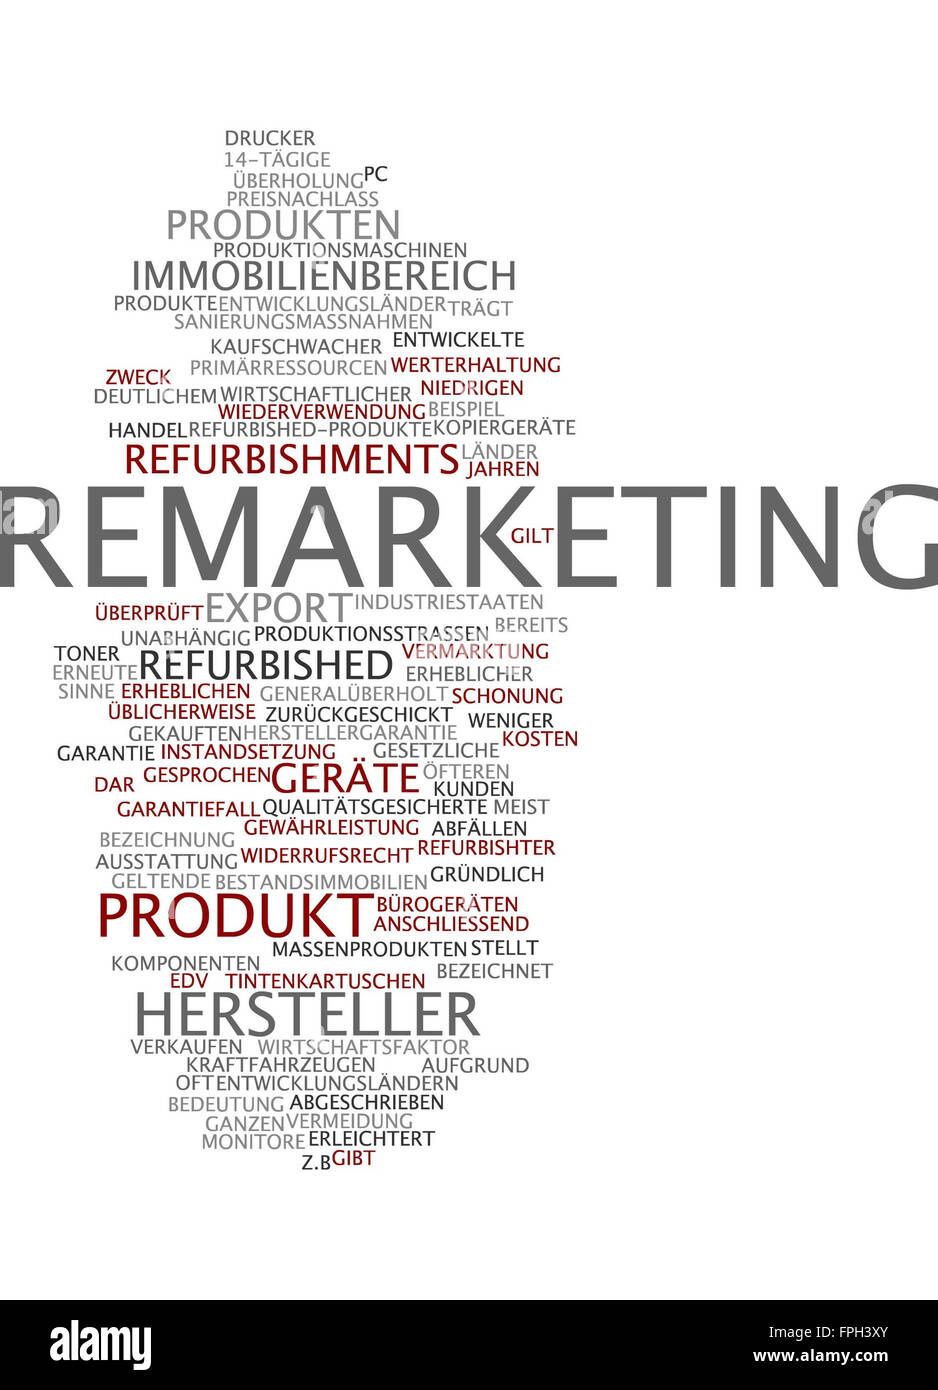 Remarketing Marketing Vermarktung Verkauf - Stock Image